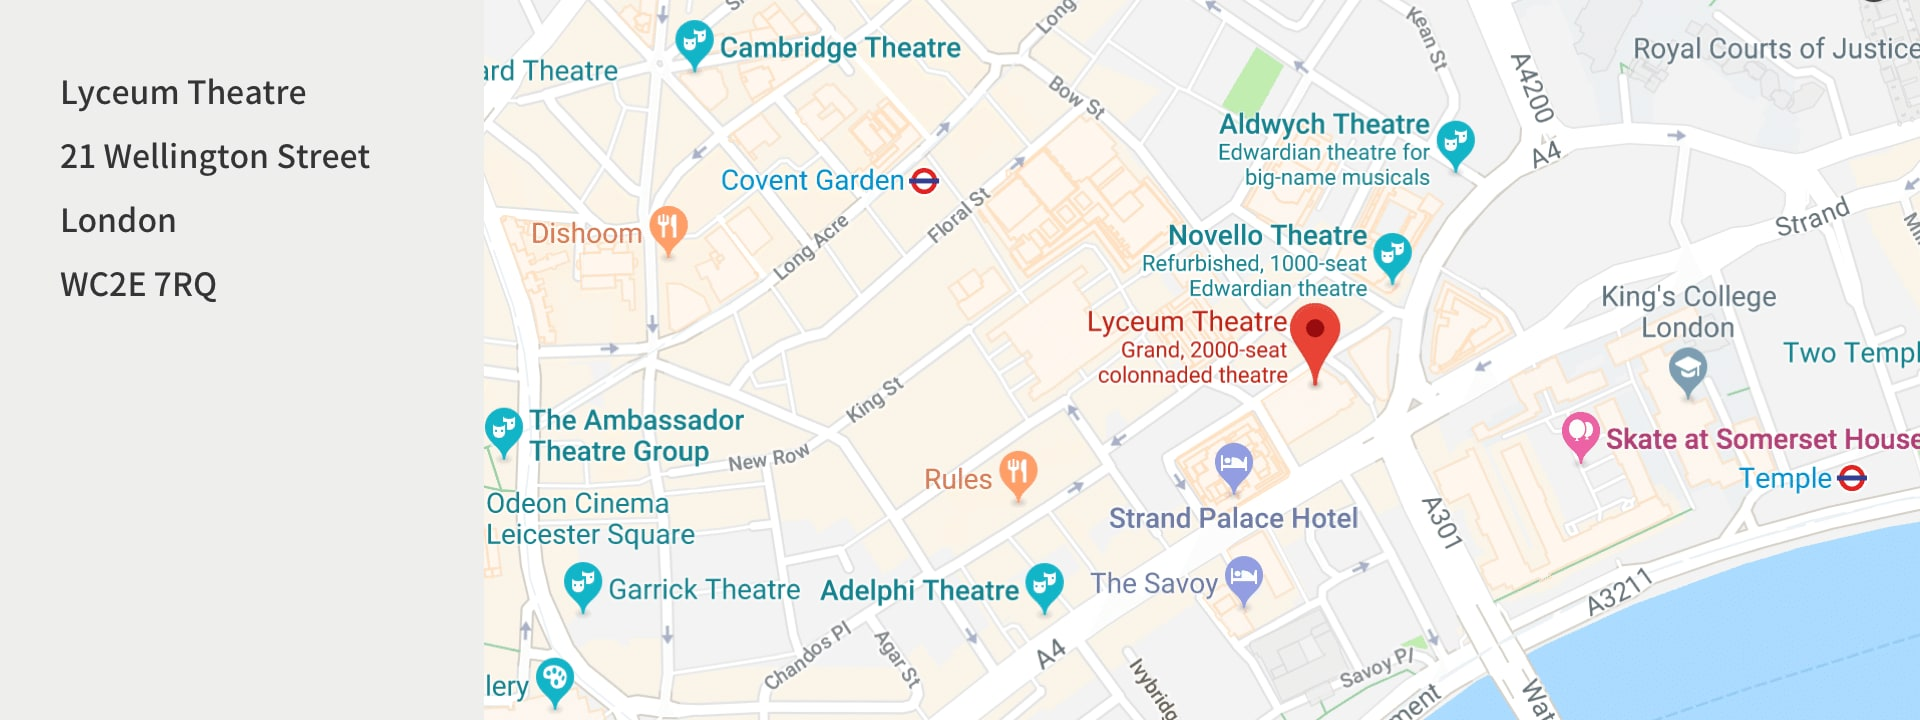 Street map of the Lyceum Theatre in London